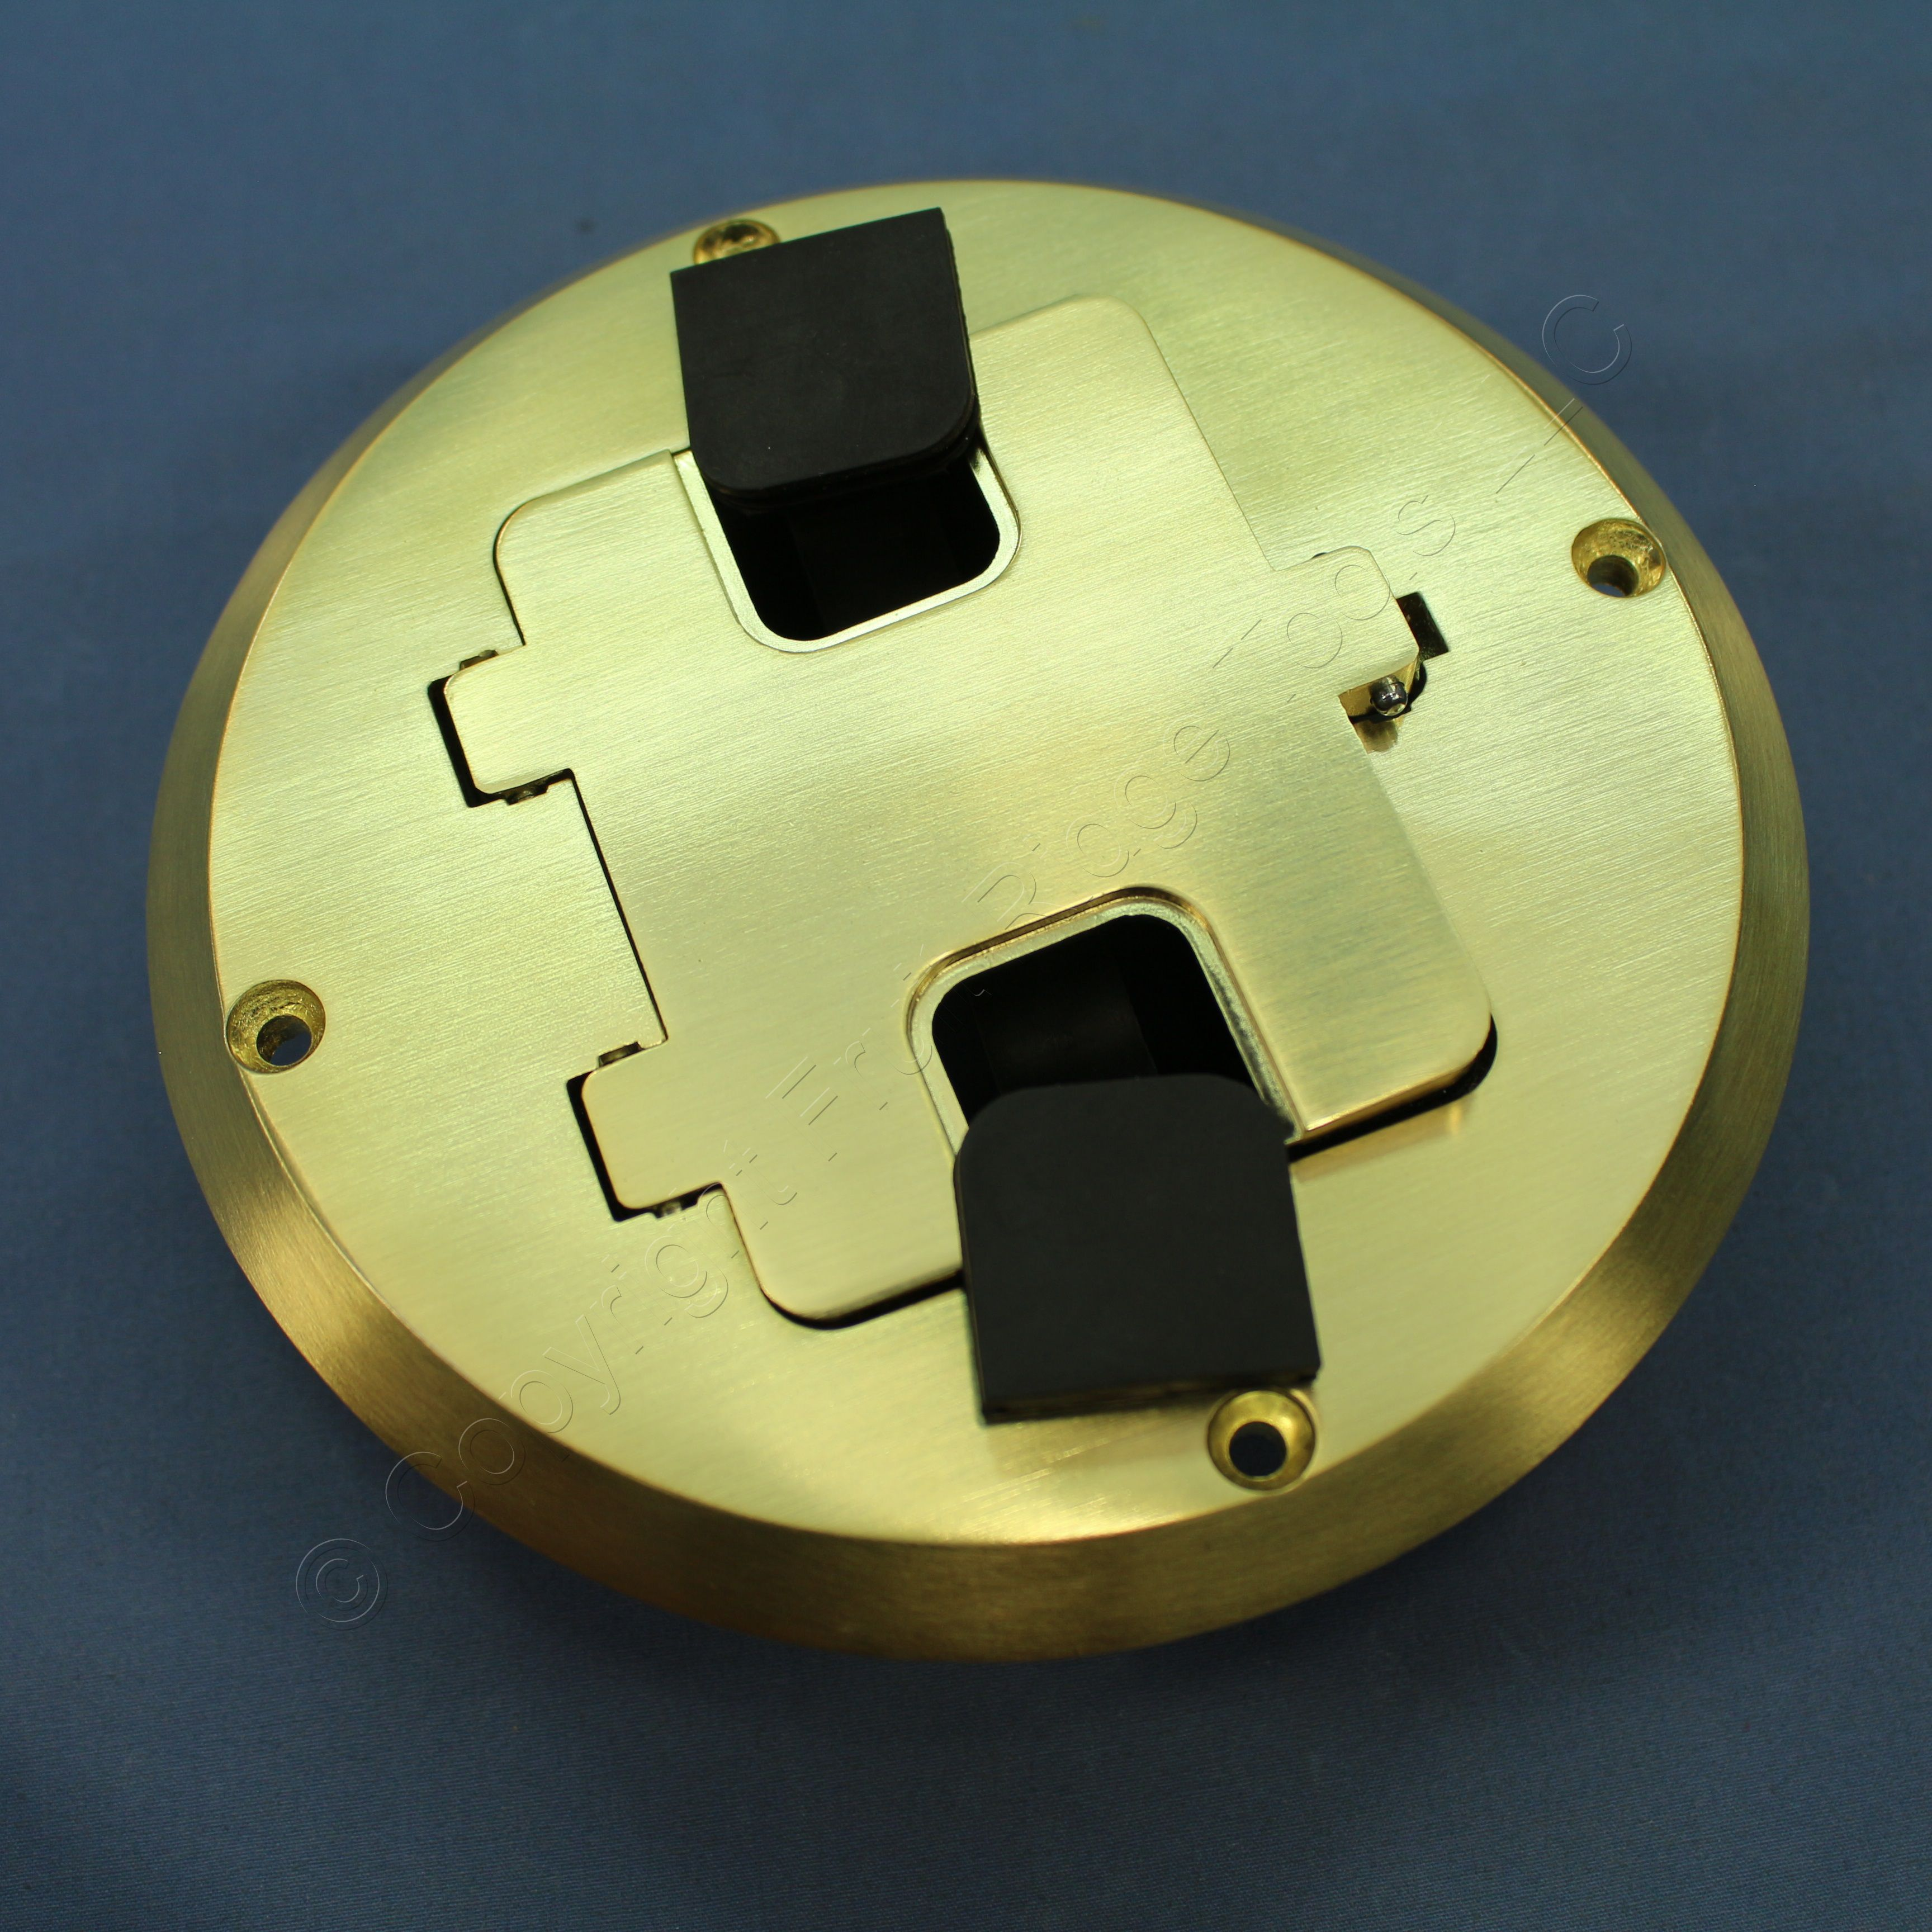 strap floors electrical floor buy ss online locking nema receptacles short hubbell leviton devices outlet